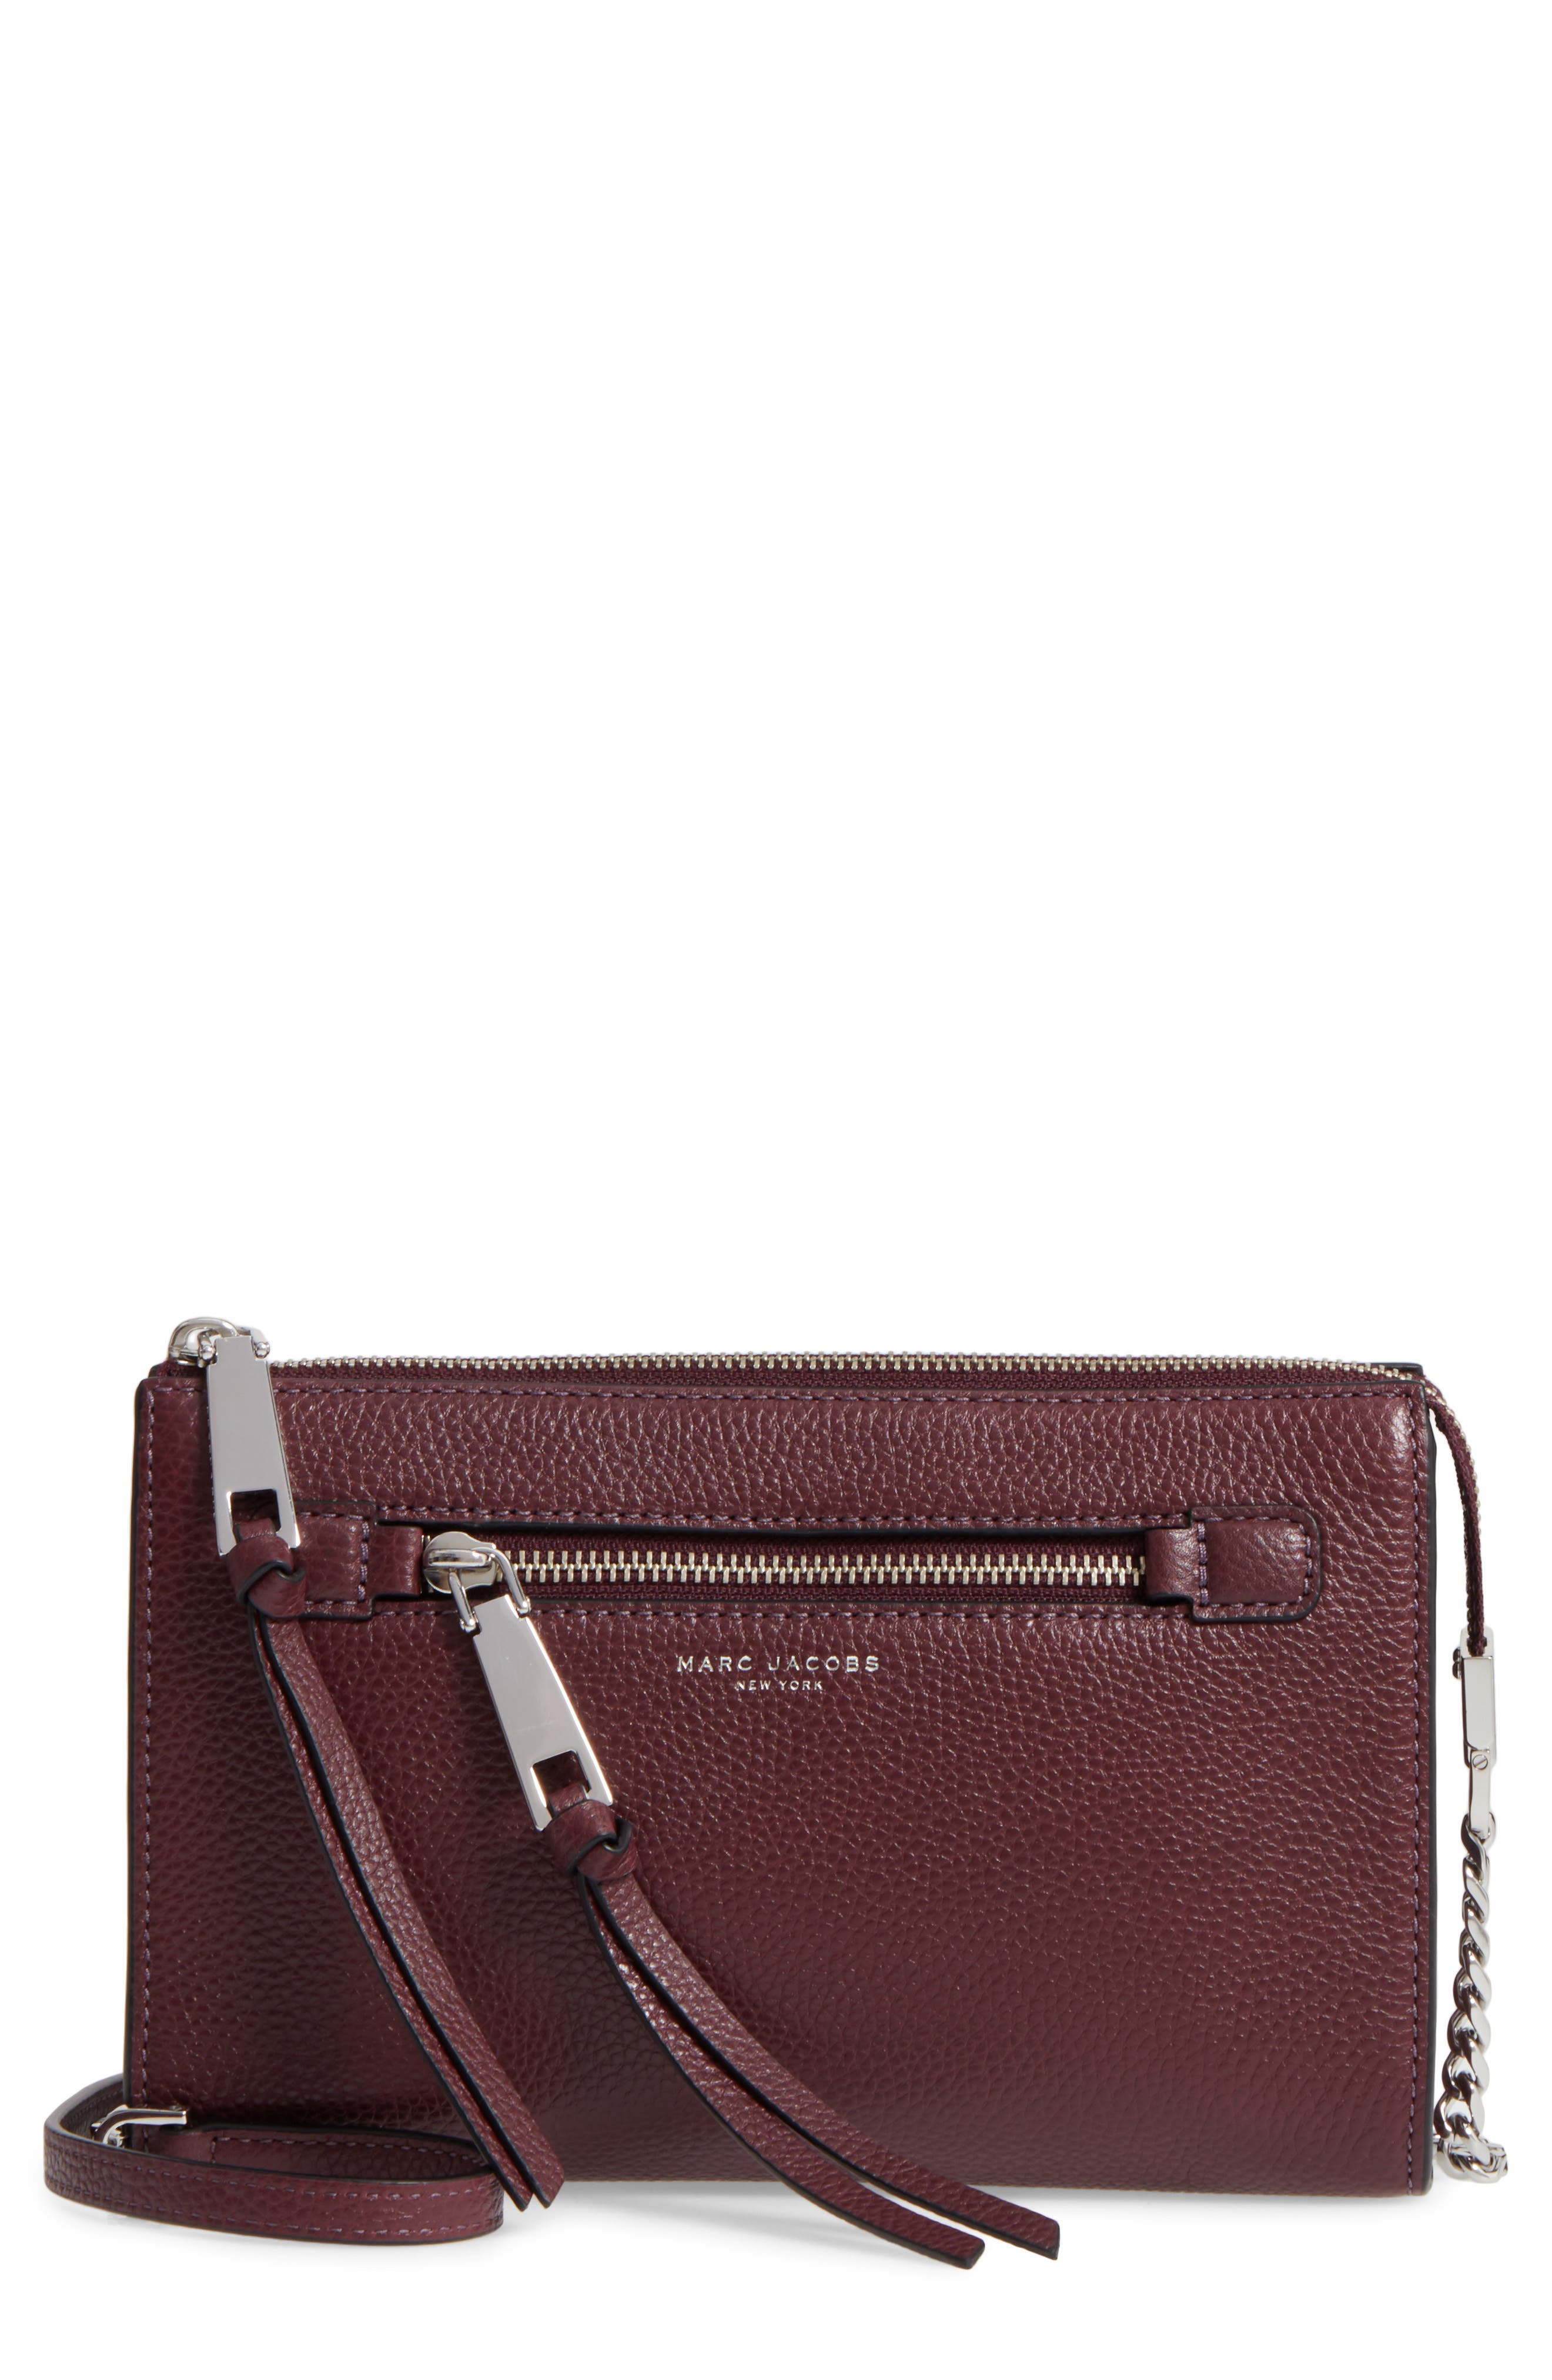 MARC JACOBS Small Recruit Leather Crossbody Bag